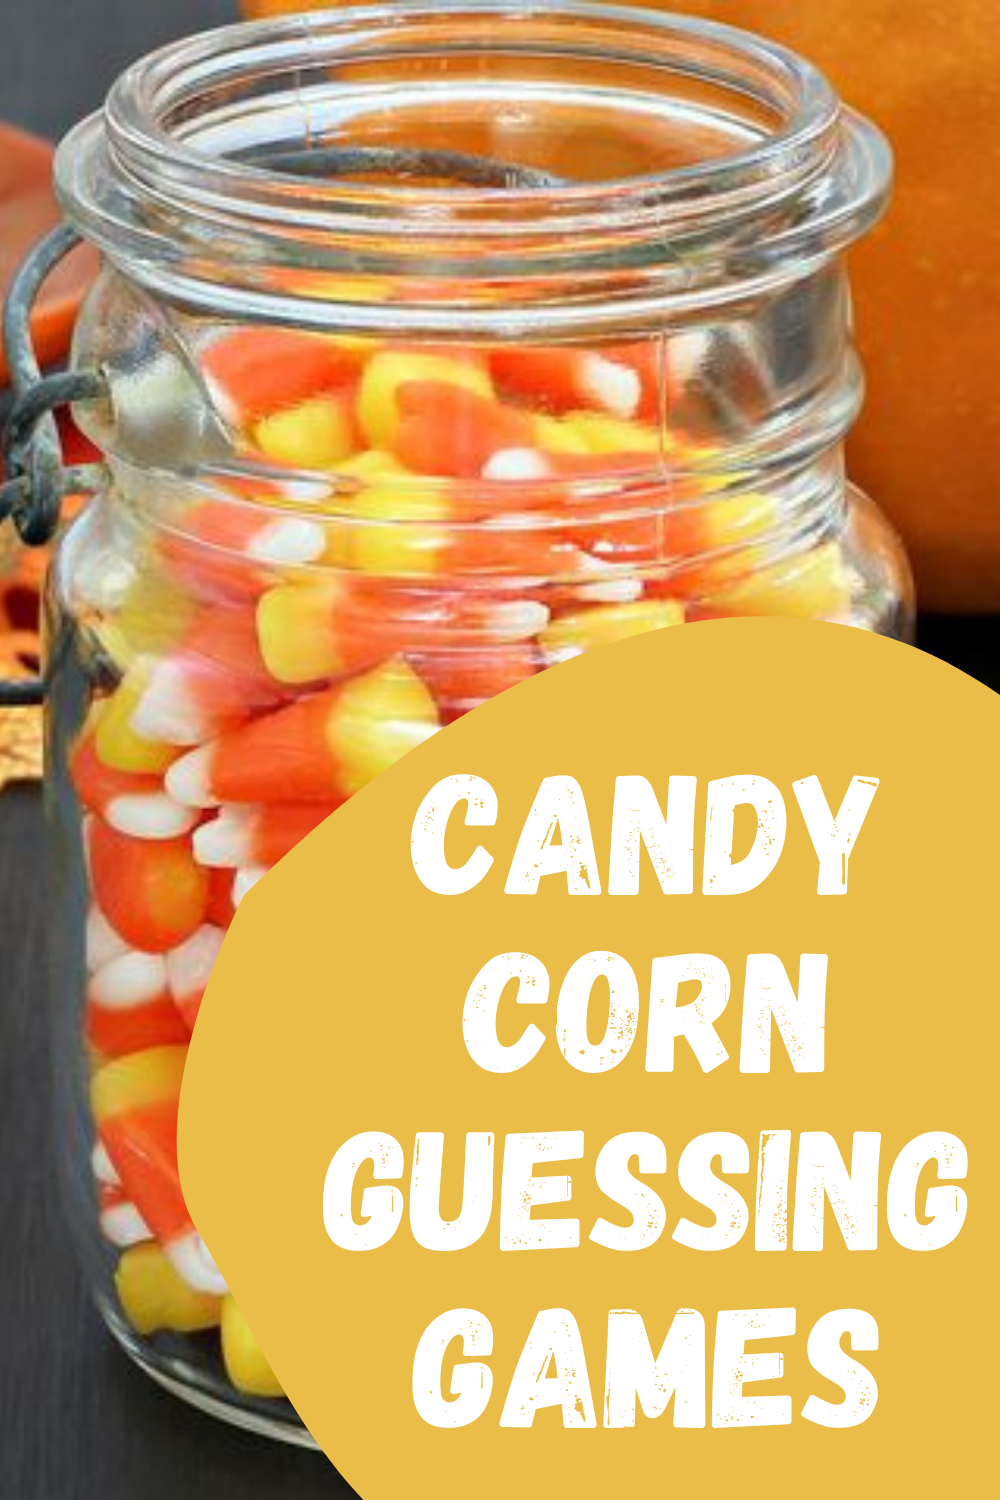 Candy Corn Games